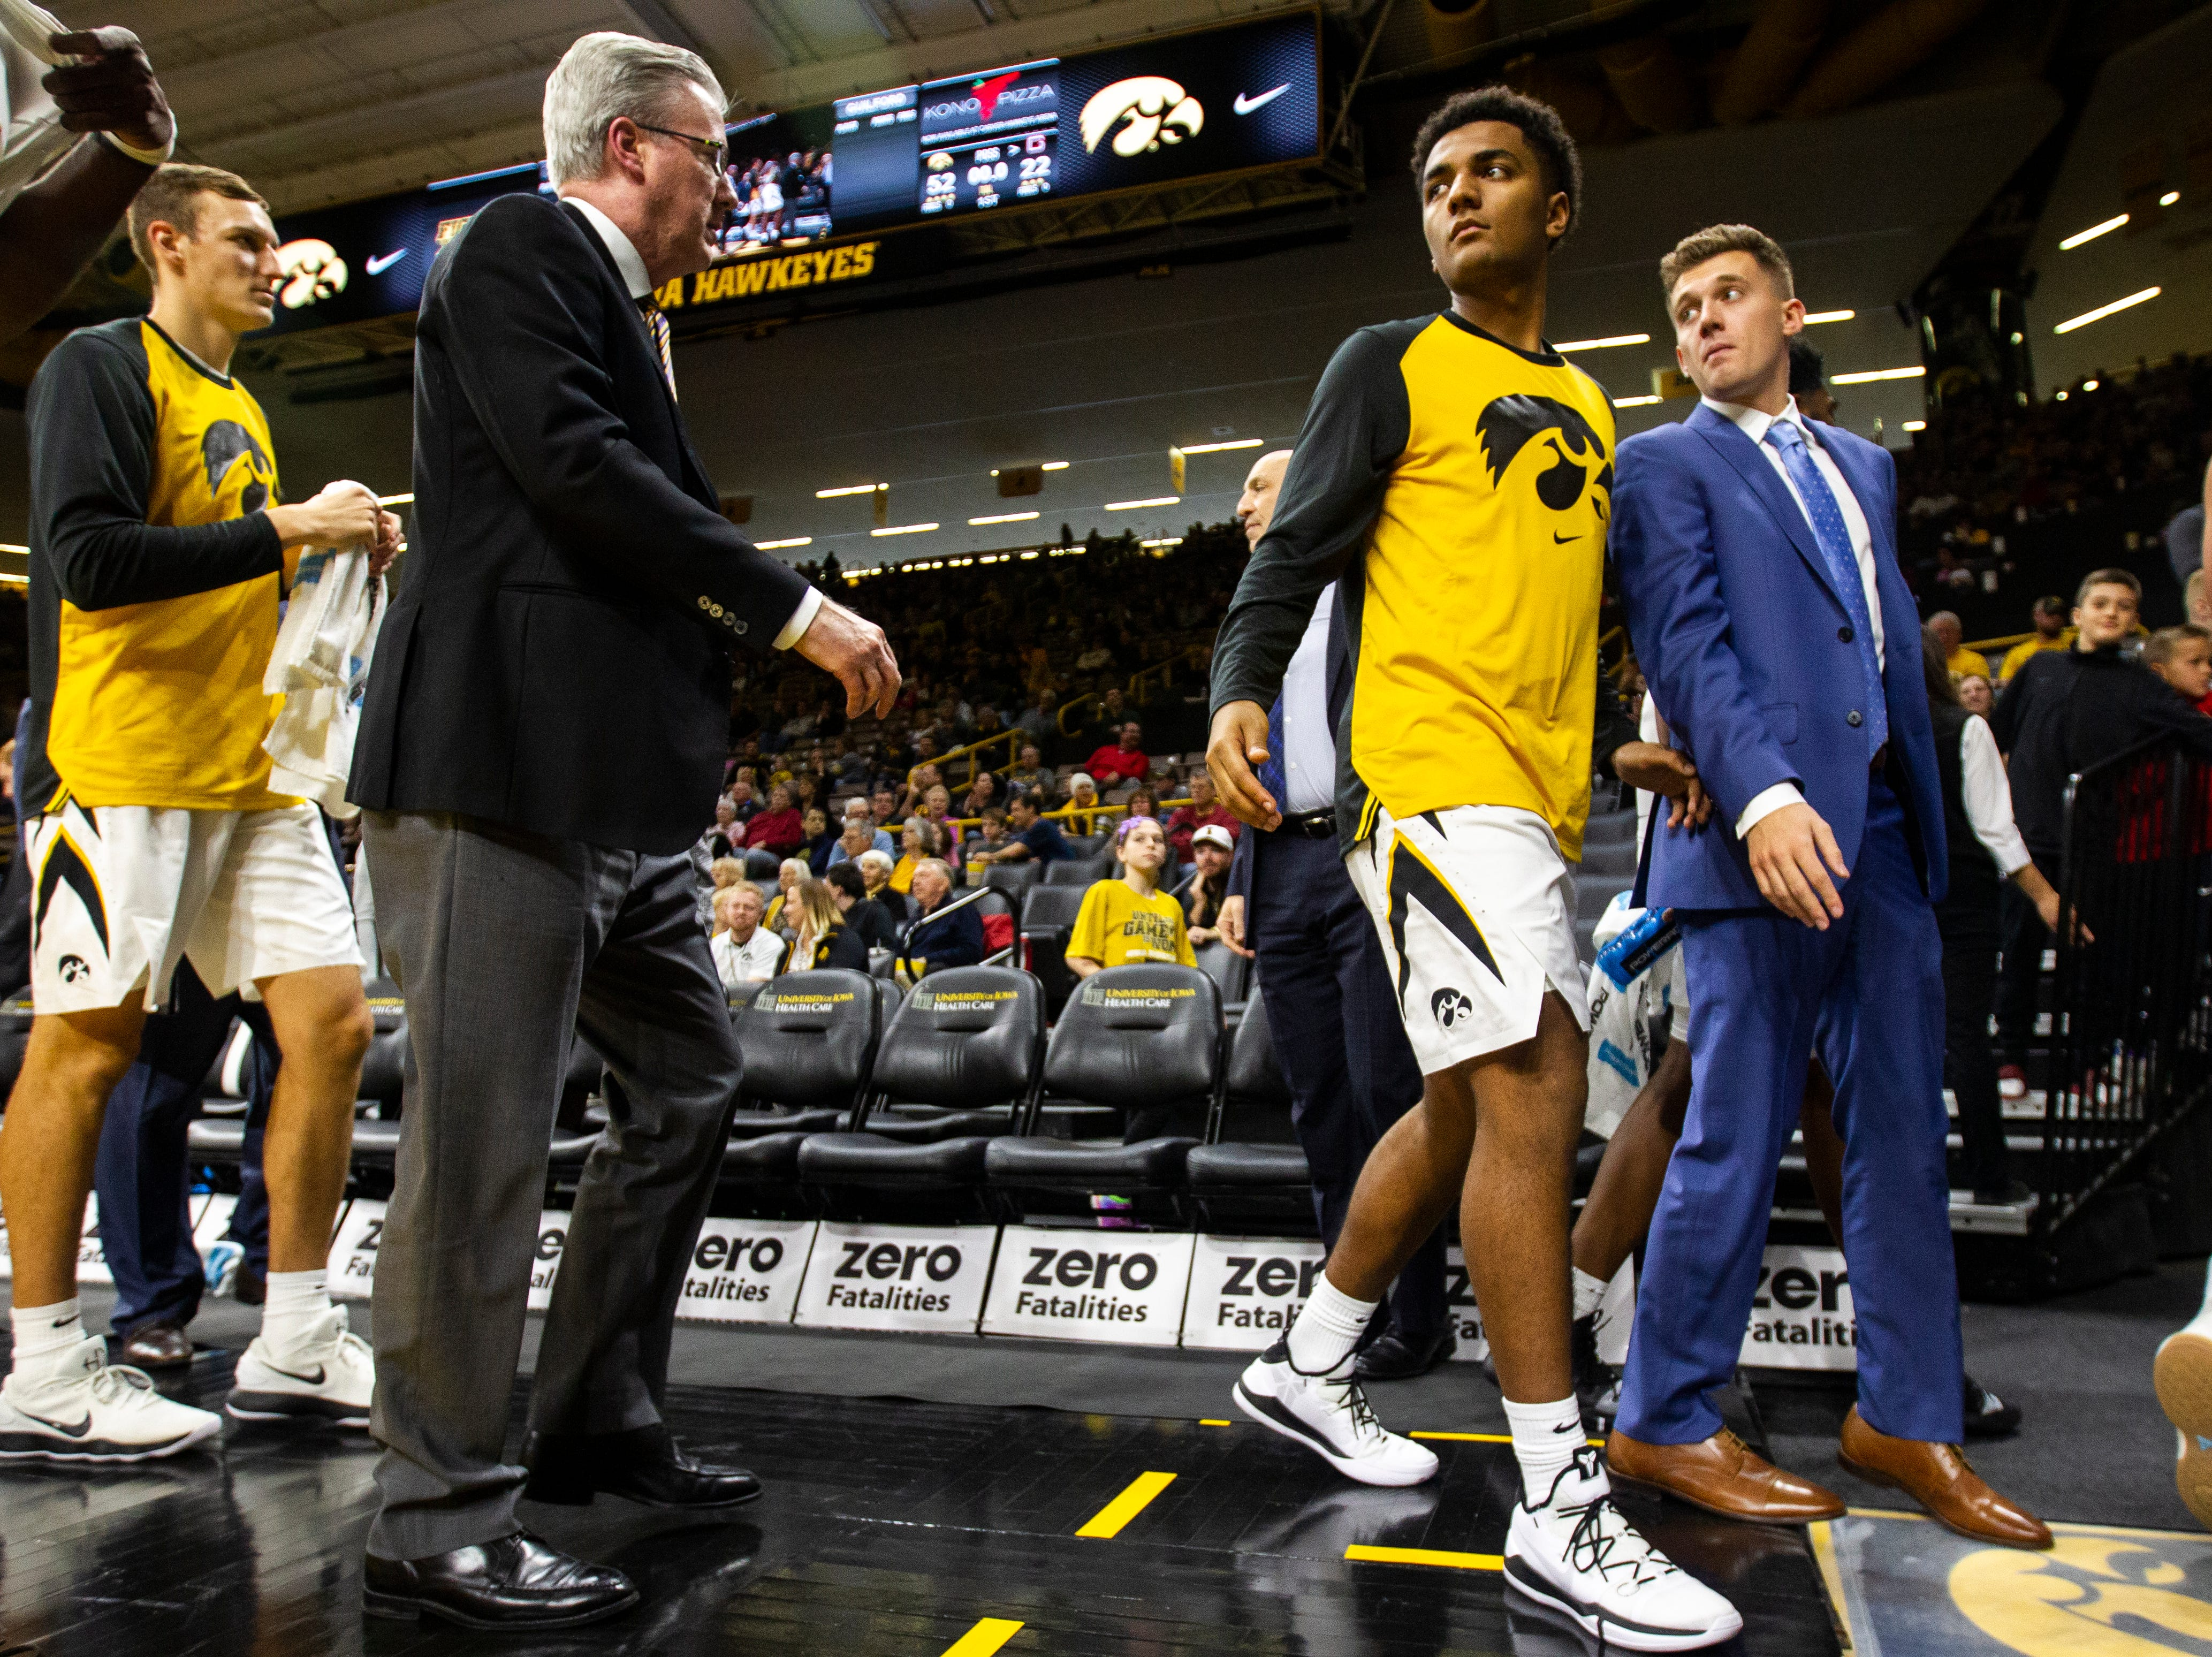 Iowa guard Jordan Bohannon (3) looks over his shoulder to Iowa men's basketball head coach Fran McCaffery at the half during a men's basketball exhibition game on Sunday, Nov. 4, 2018, at Carver-Hawkeye Arena in Iowa City.